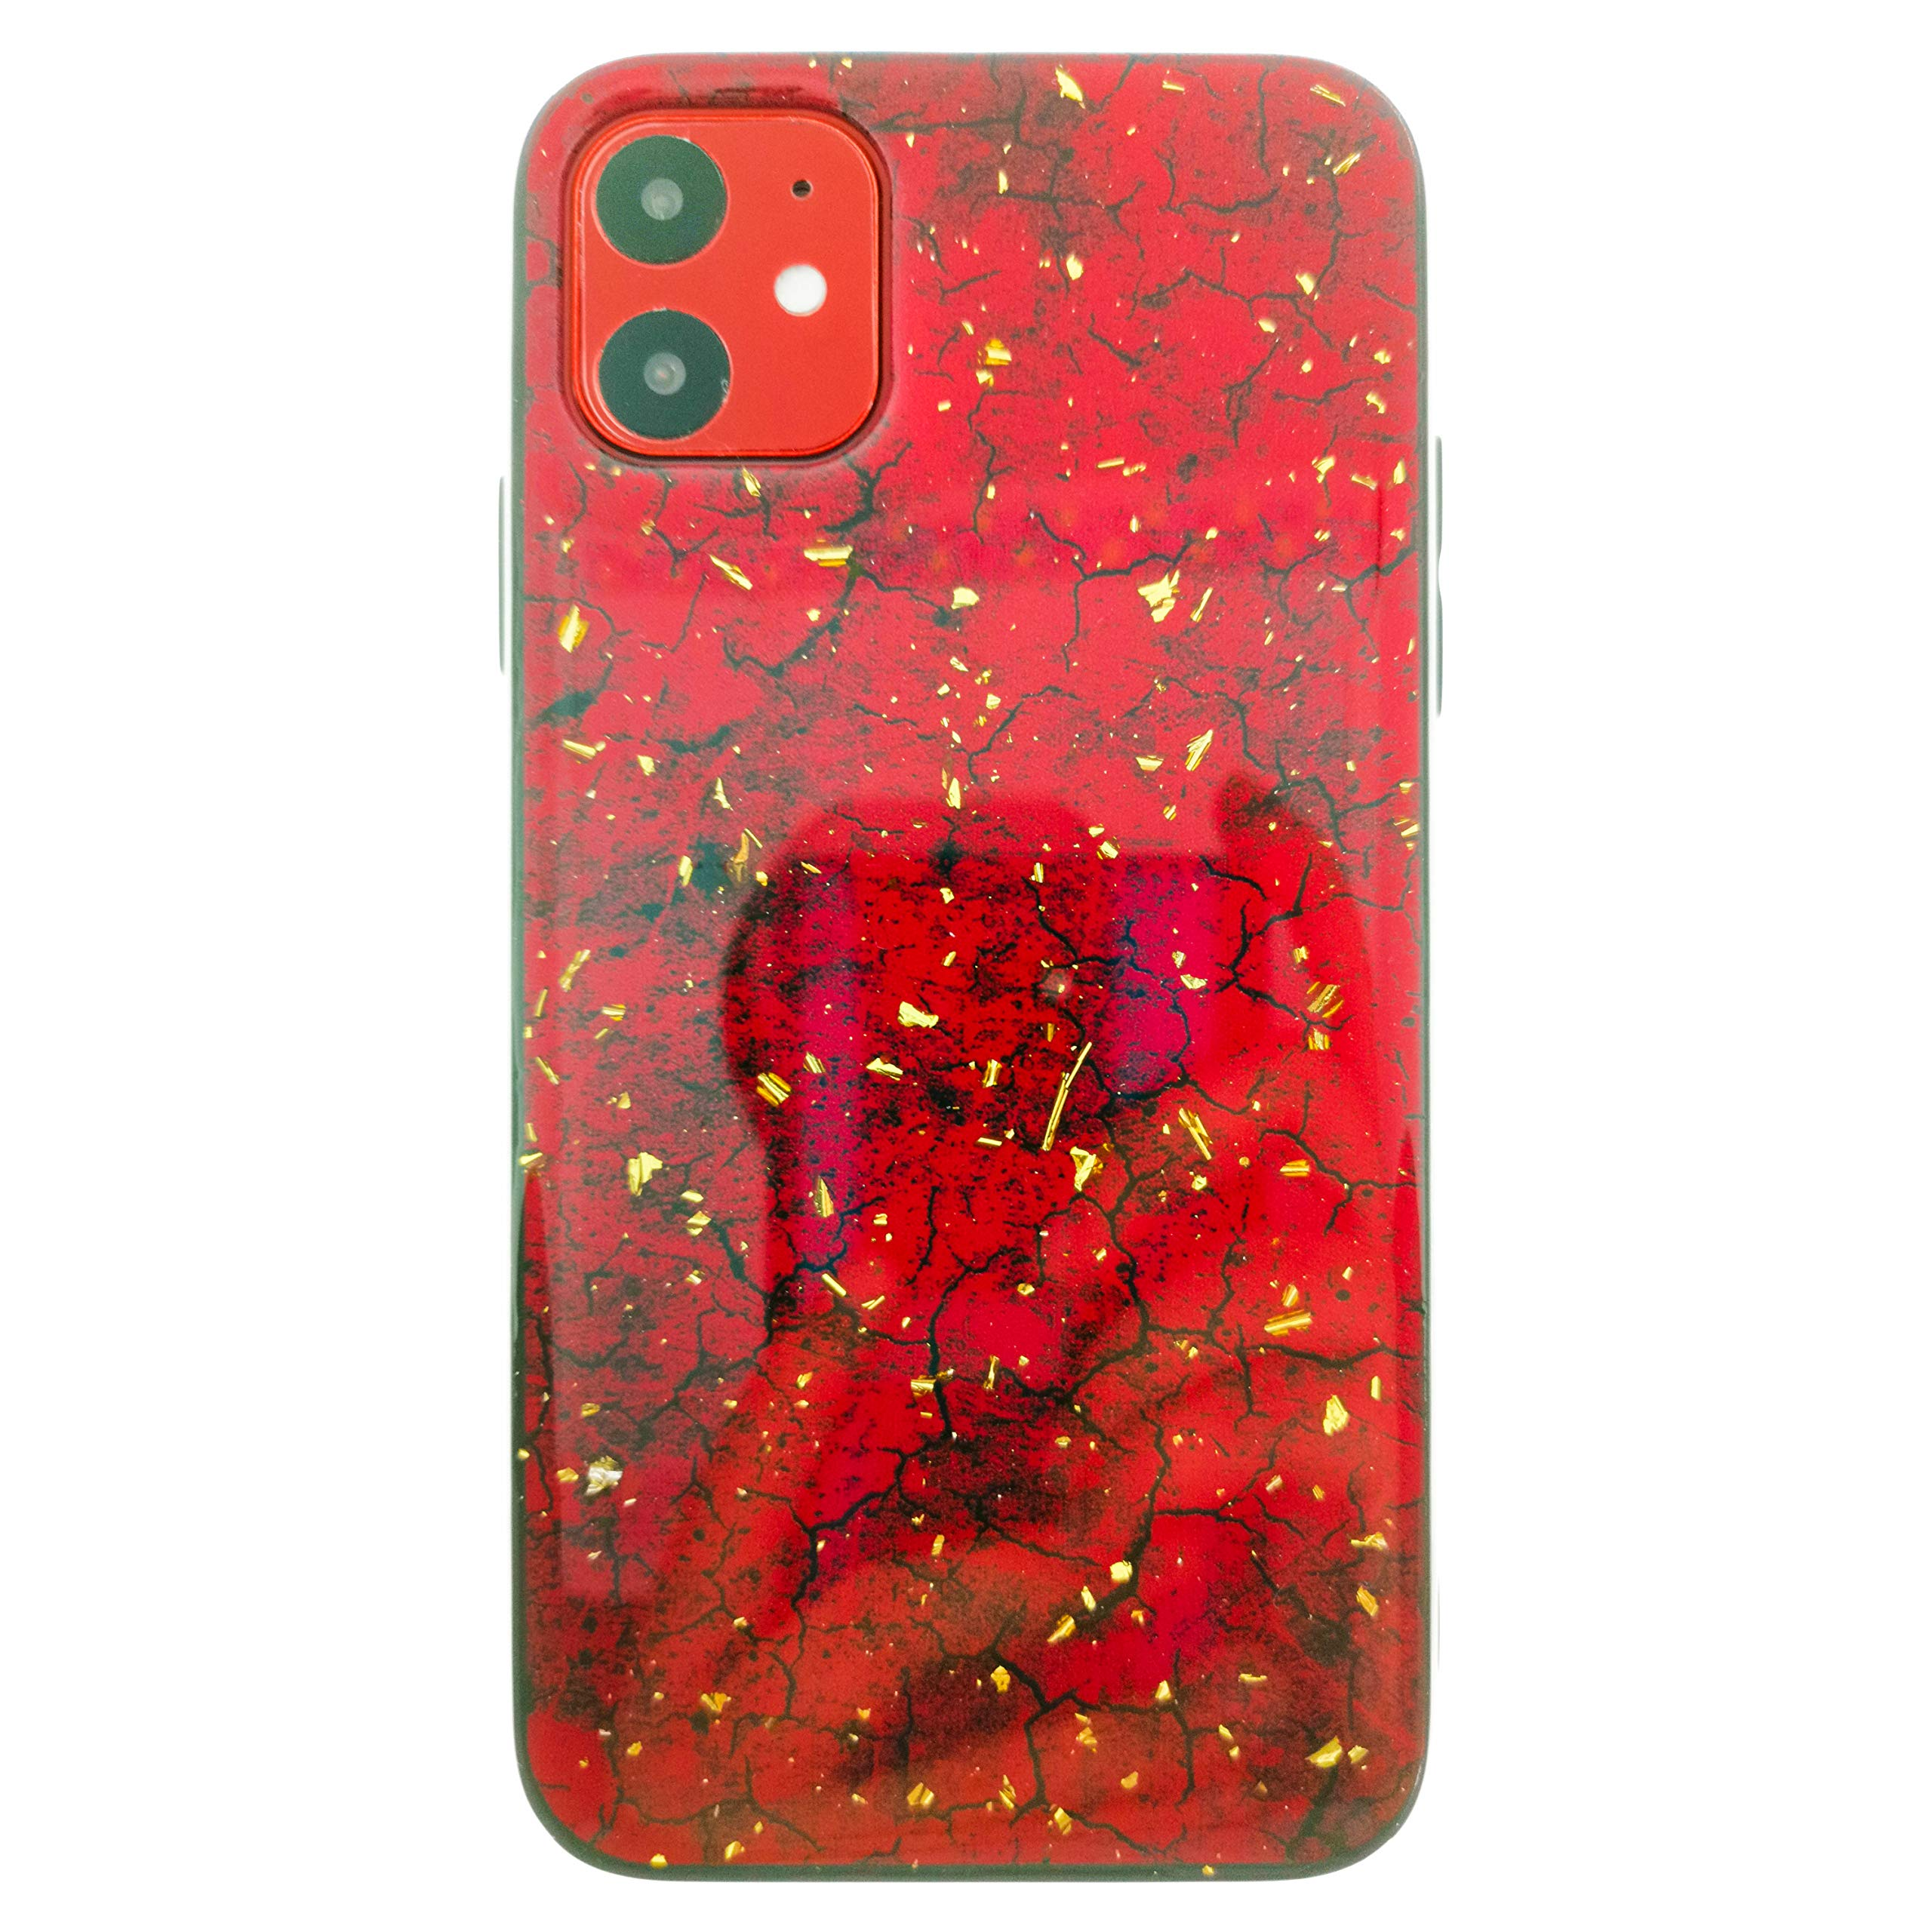 iPhone 11 Case, Ultra Slim Fit Soft TPU Protective Clear Case Shock-Absorption Anti-Scratch Compatible Cover Cases for iPhone 11 [2019] [Jade Red]